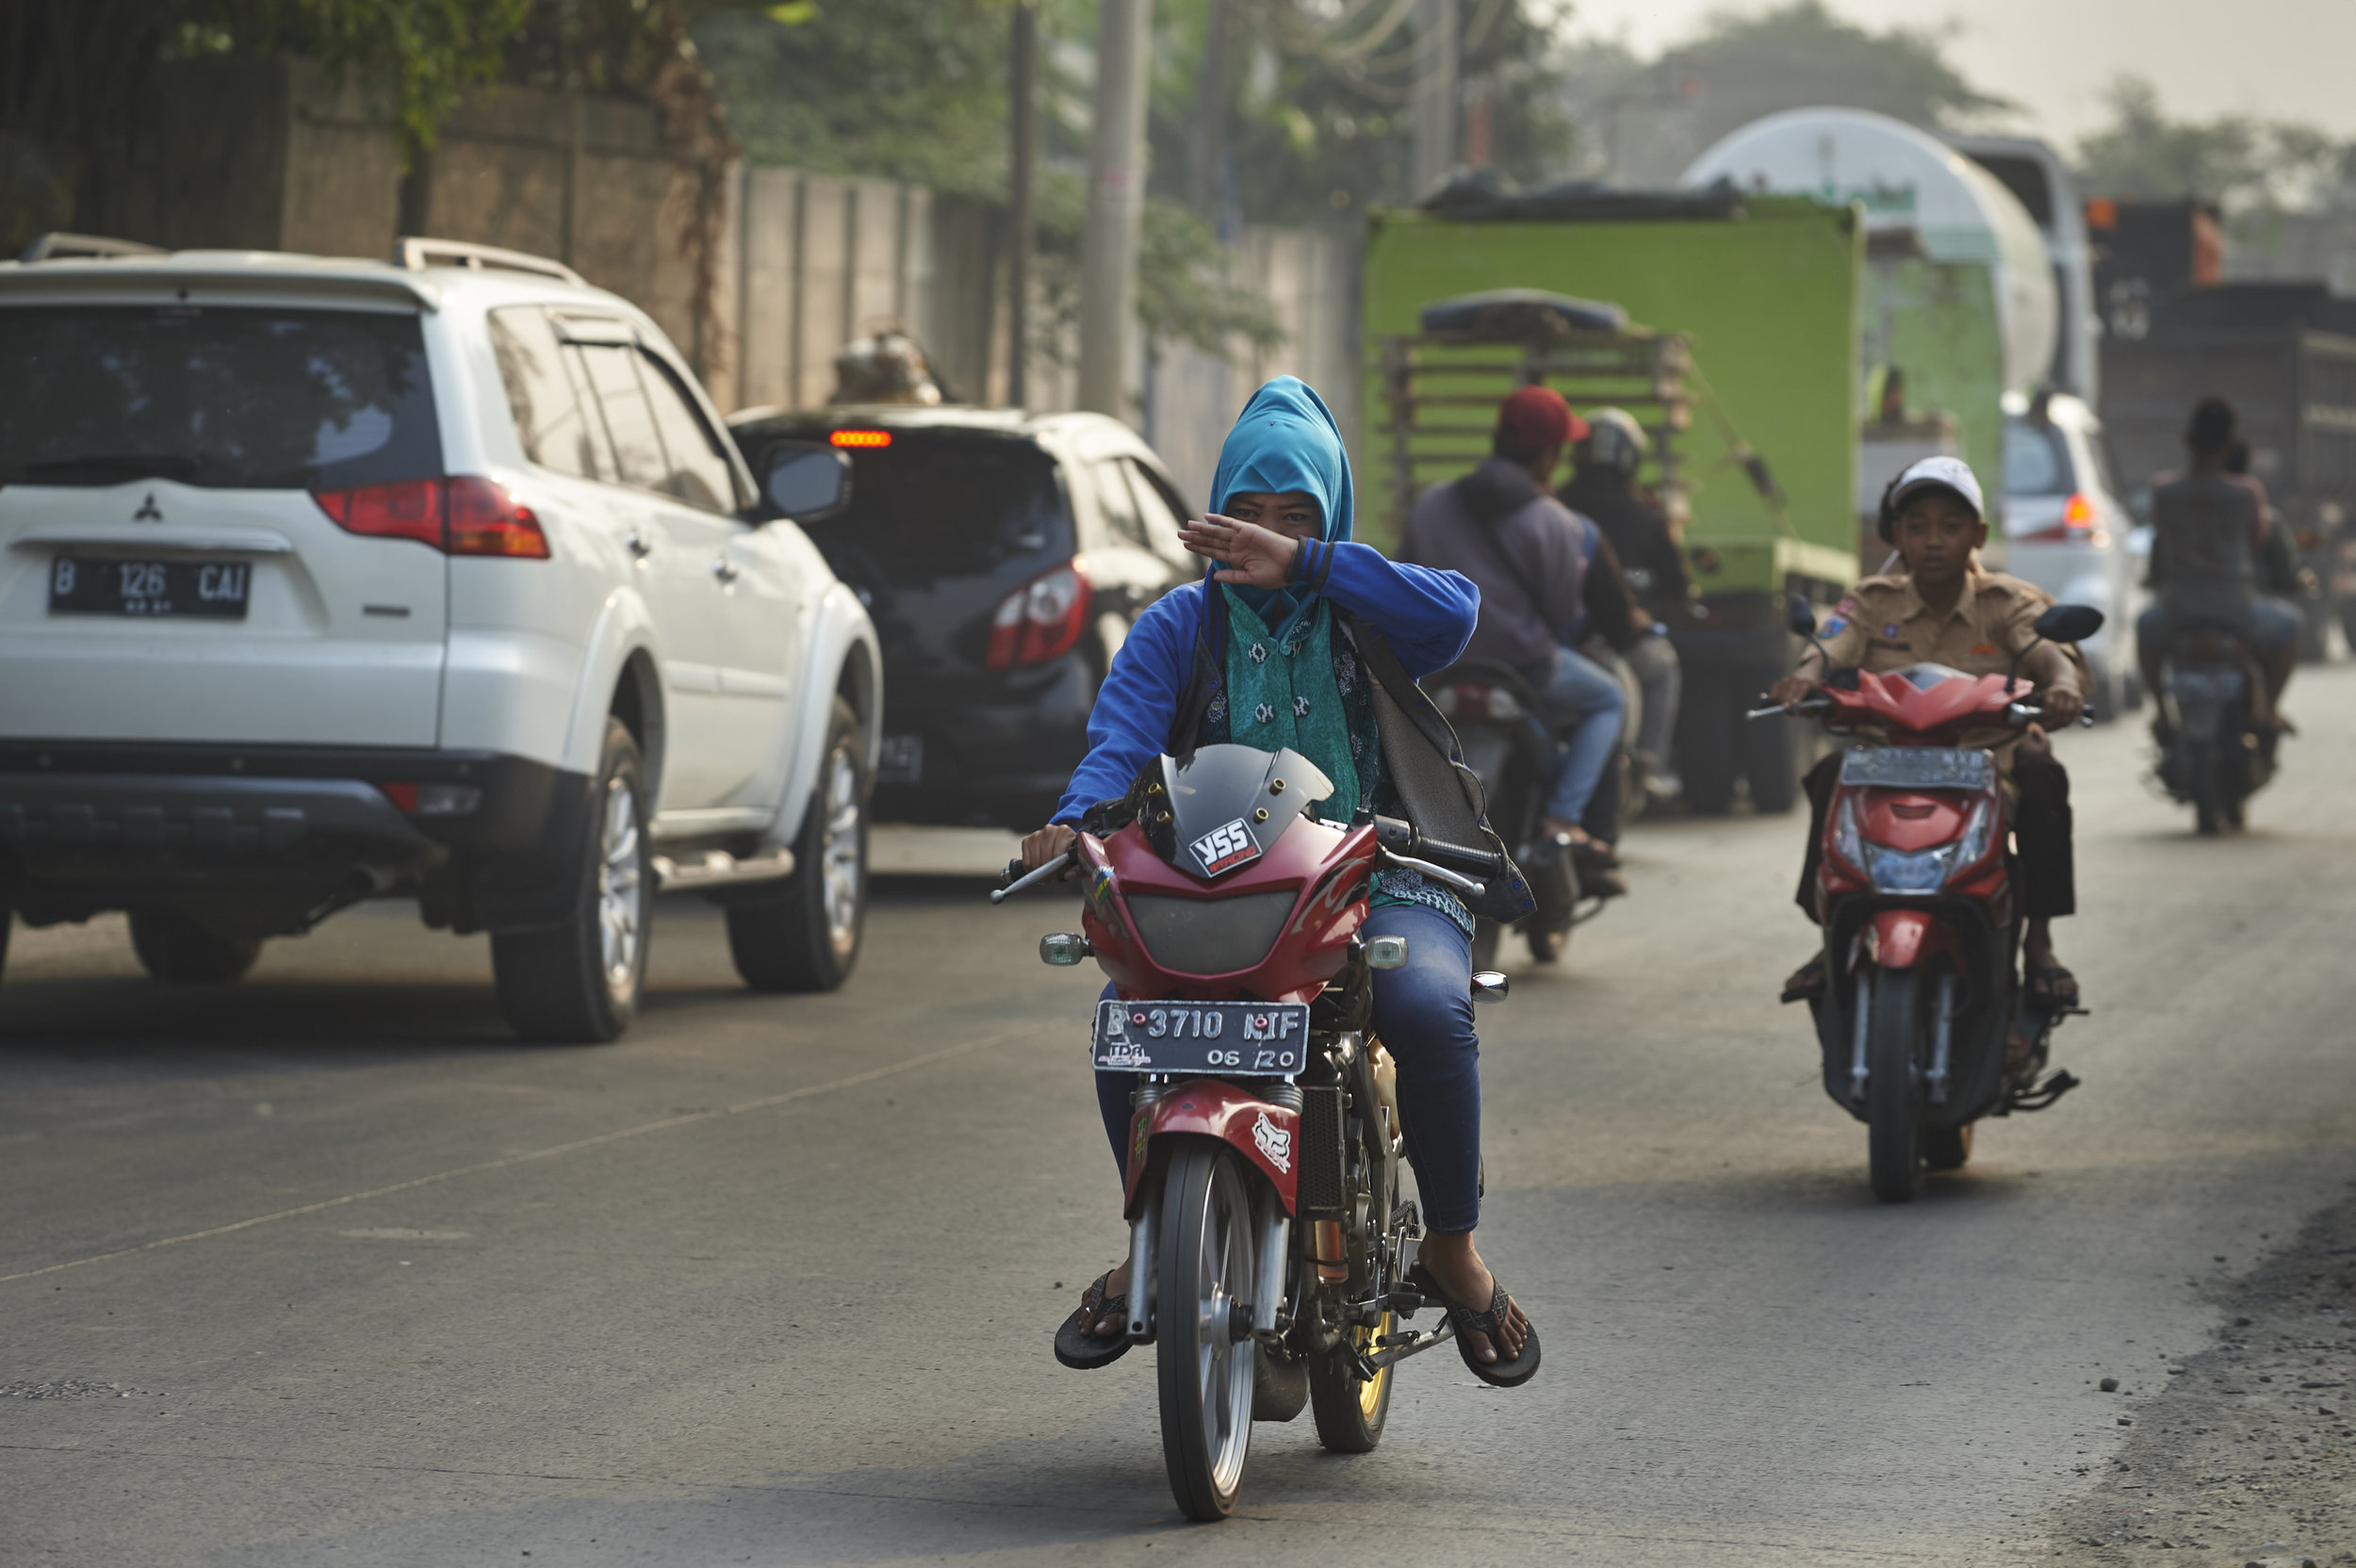 Air quality is getting worse, but the solutions are within reach. - Photo: UNICEF Indonesia